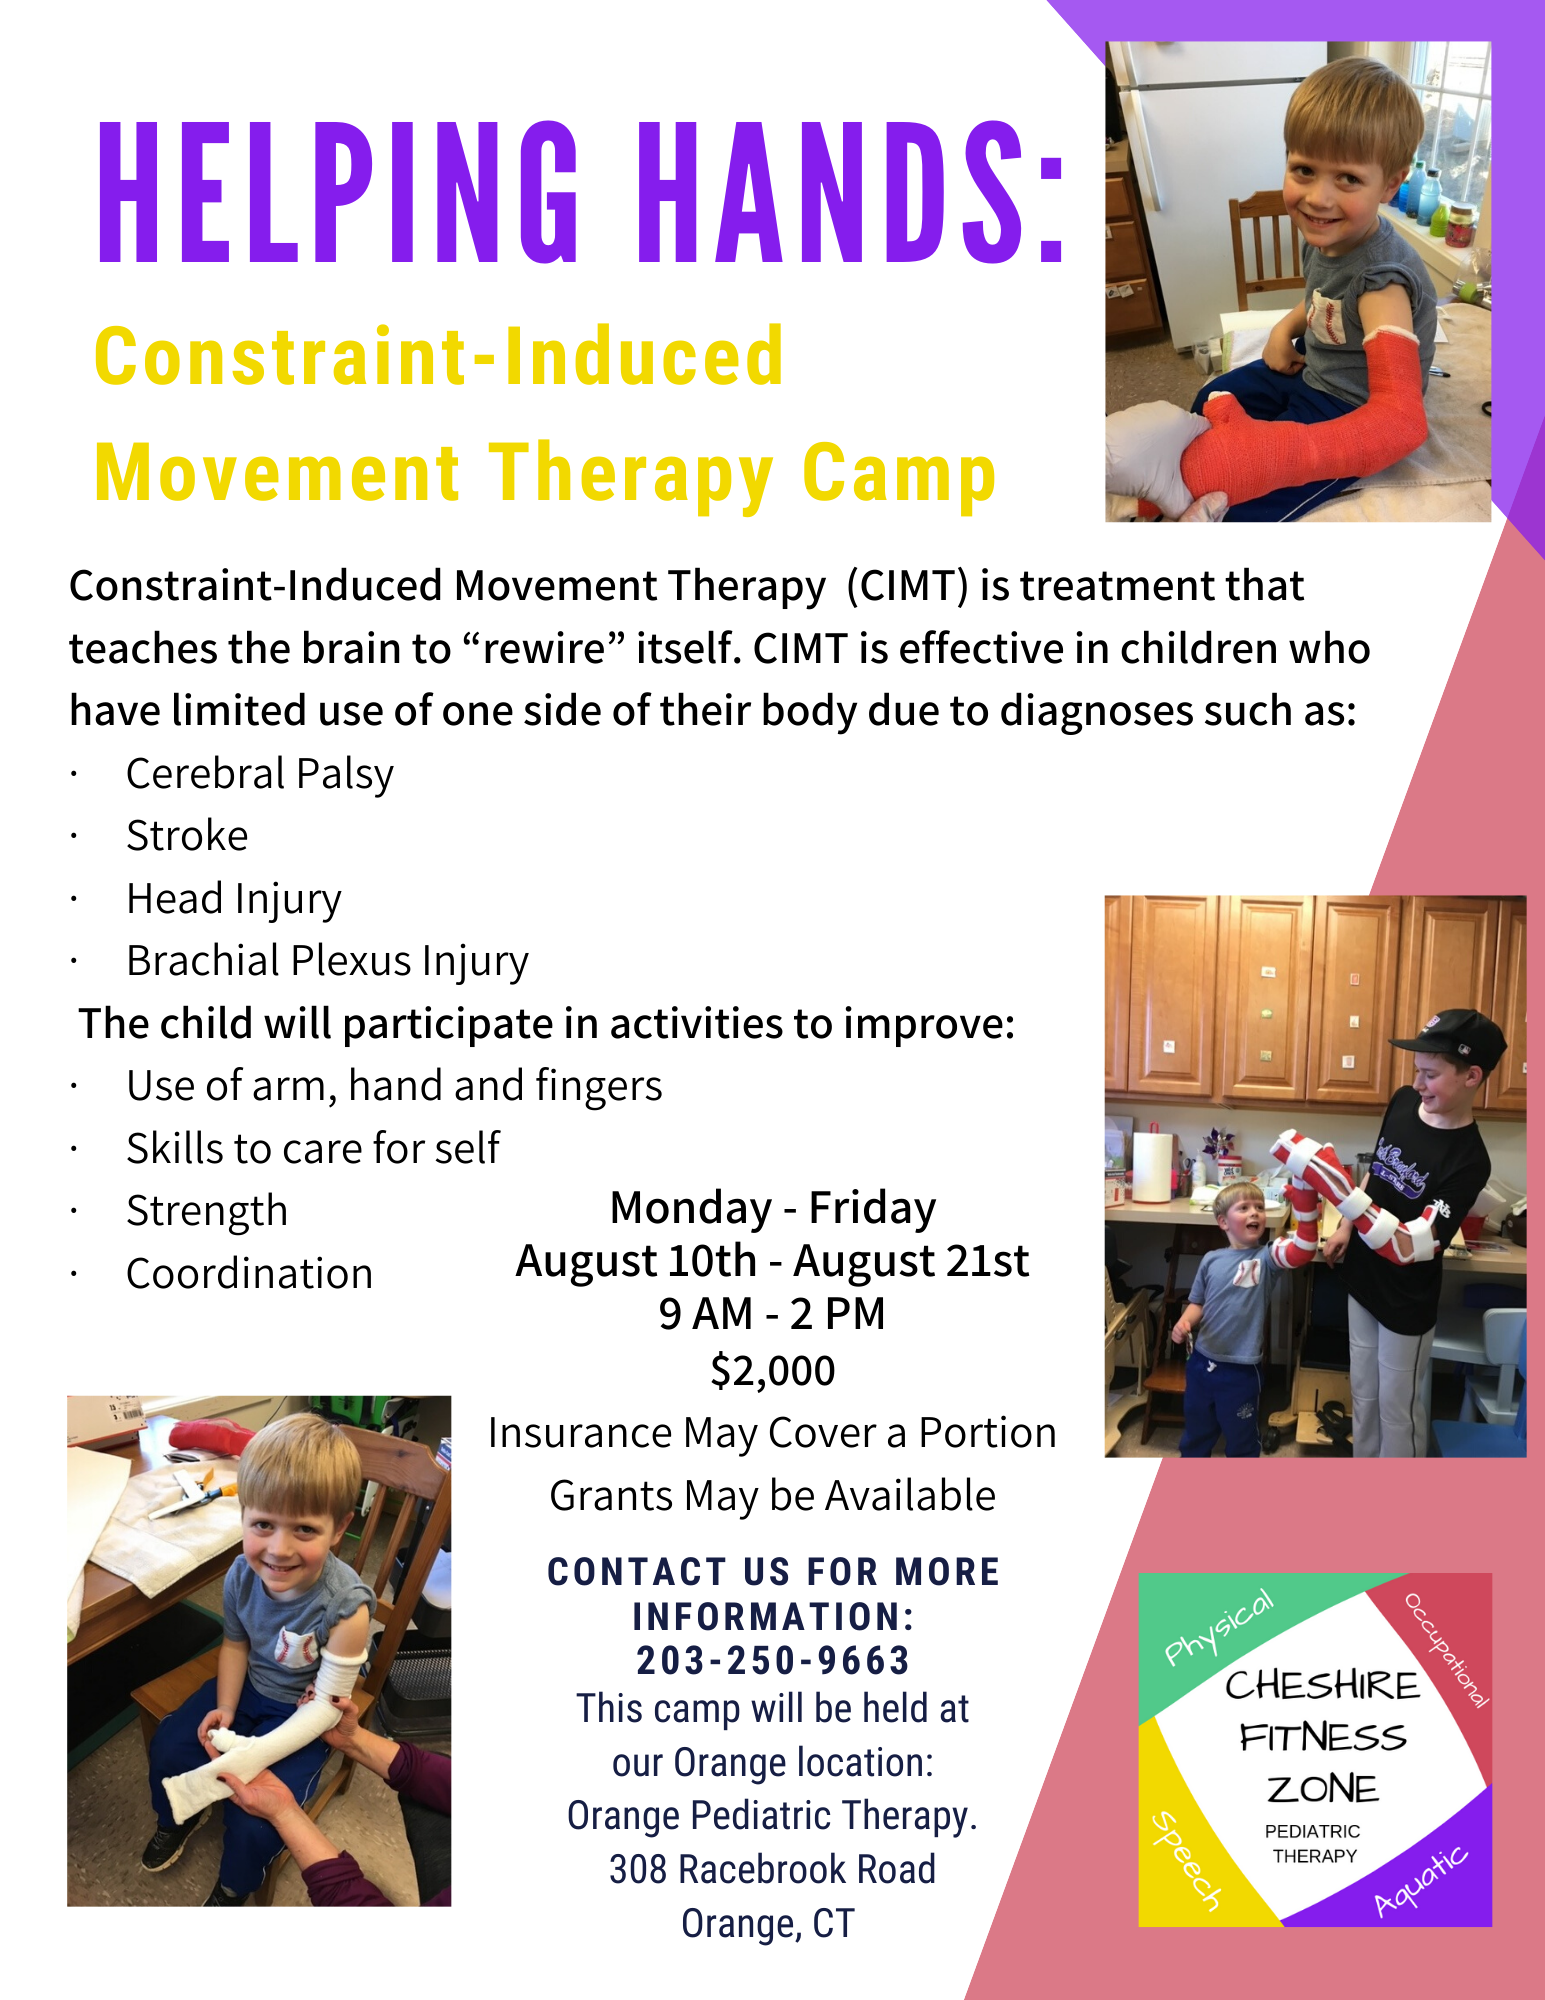 flyer with information about constraint-induced movement therapy